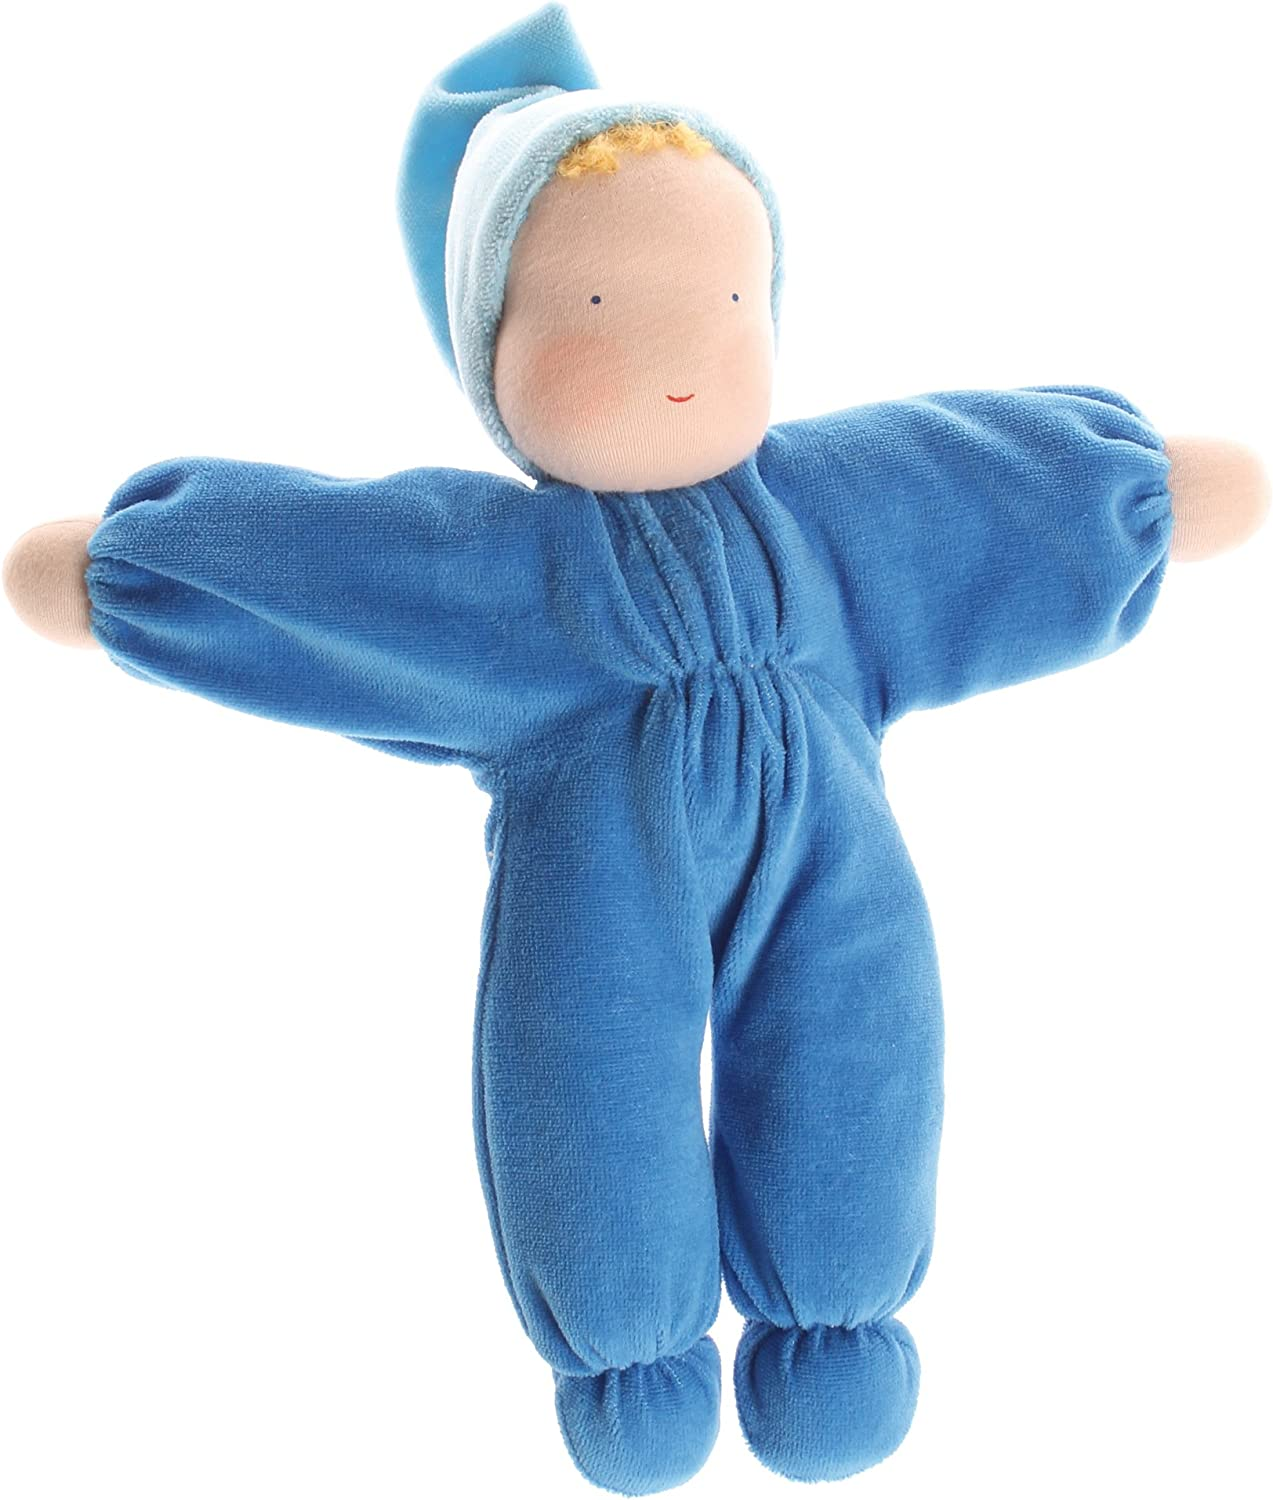 B001MRZYK6 Grimm's Soft Cuddle Baby Natural Waldorf Doll, Blue 81bIMcCfS4L